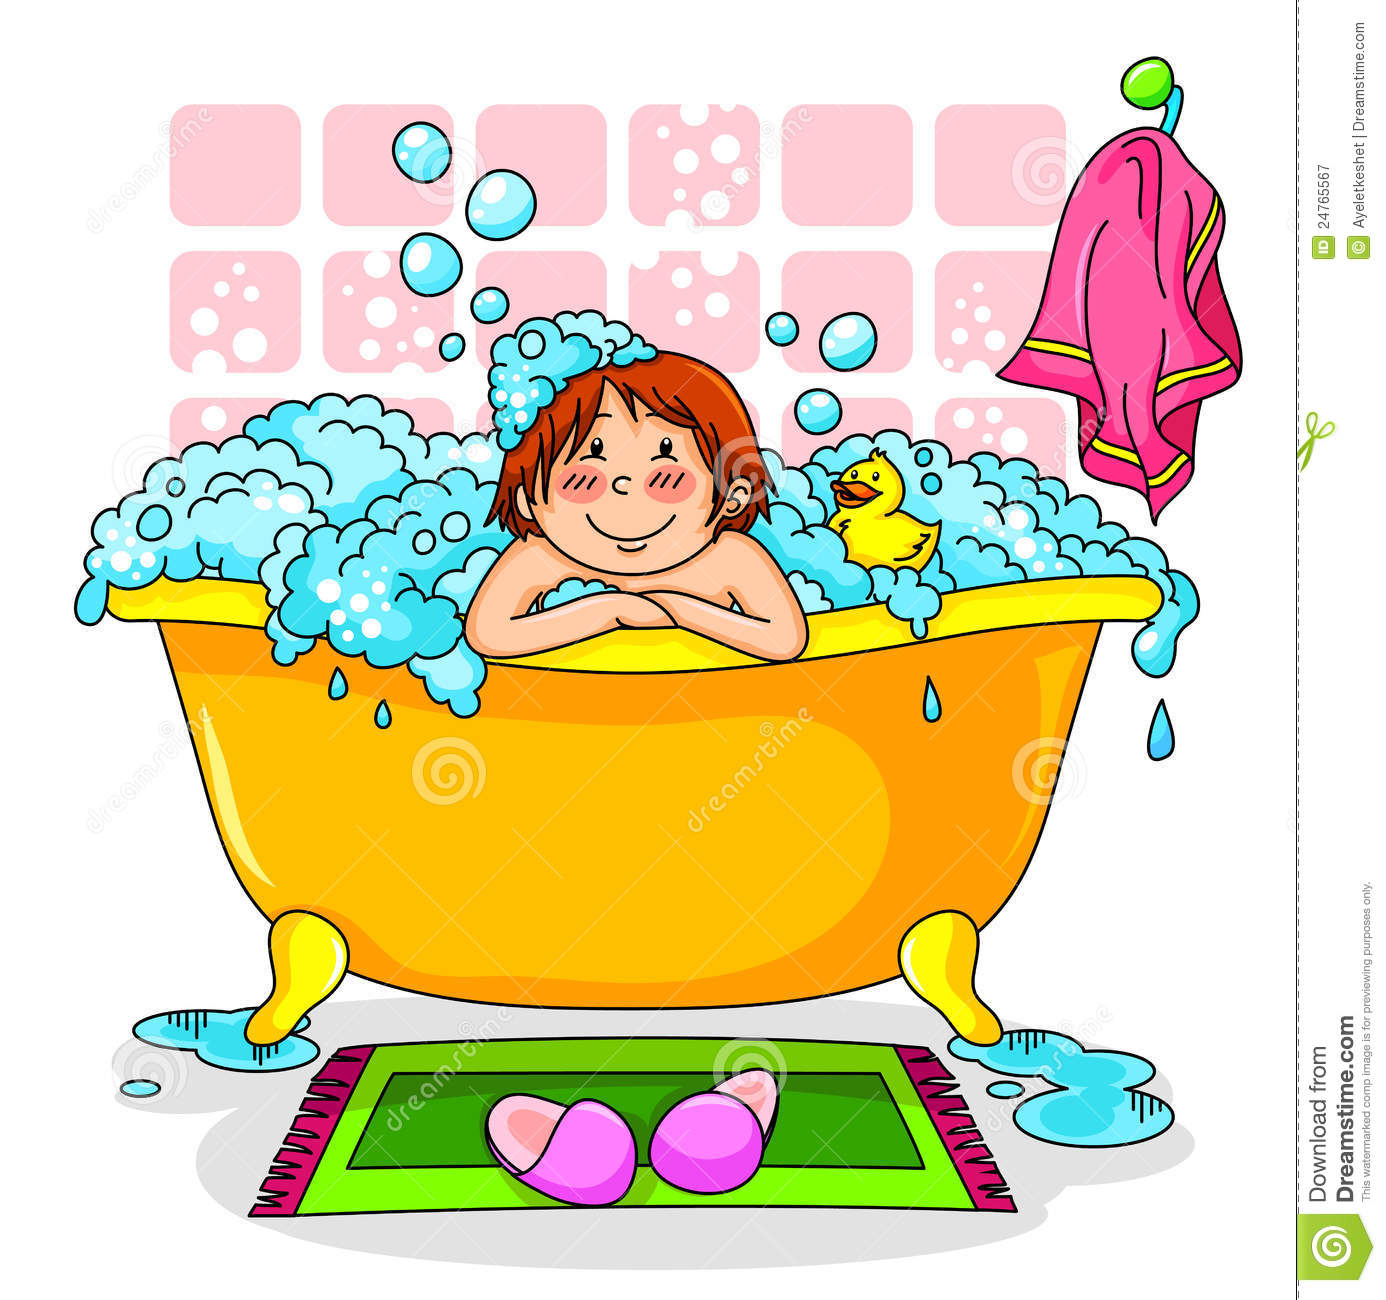 Kid in the bath stock vector. Illustration of cheerful - 24765567